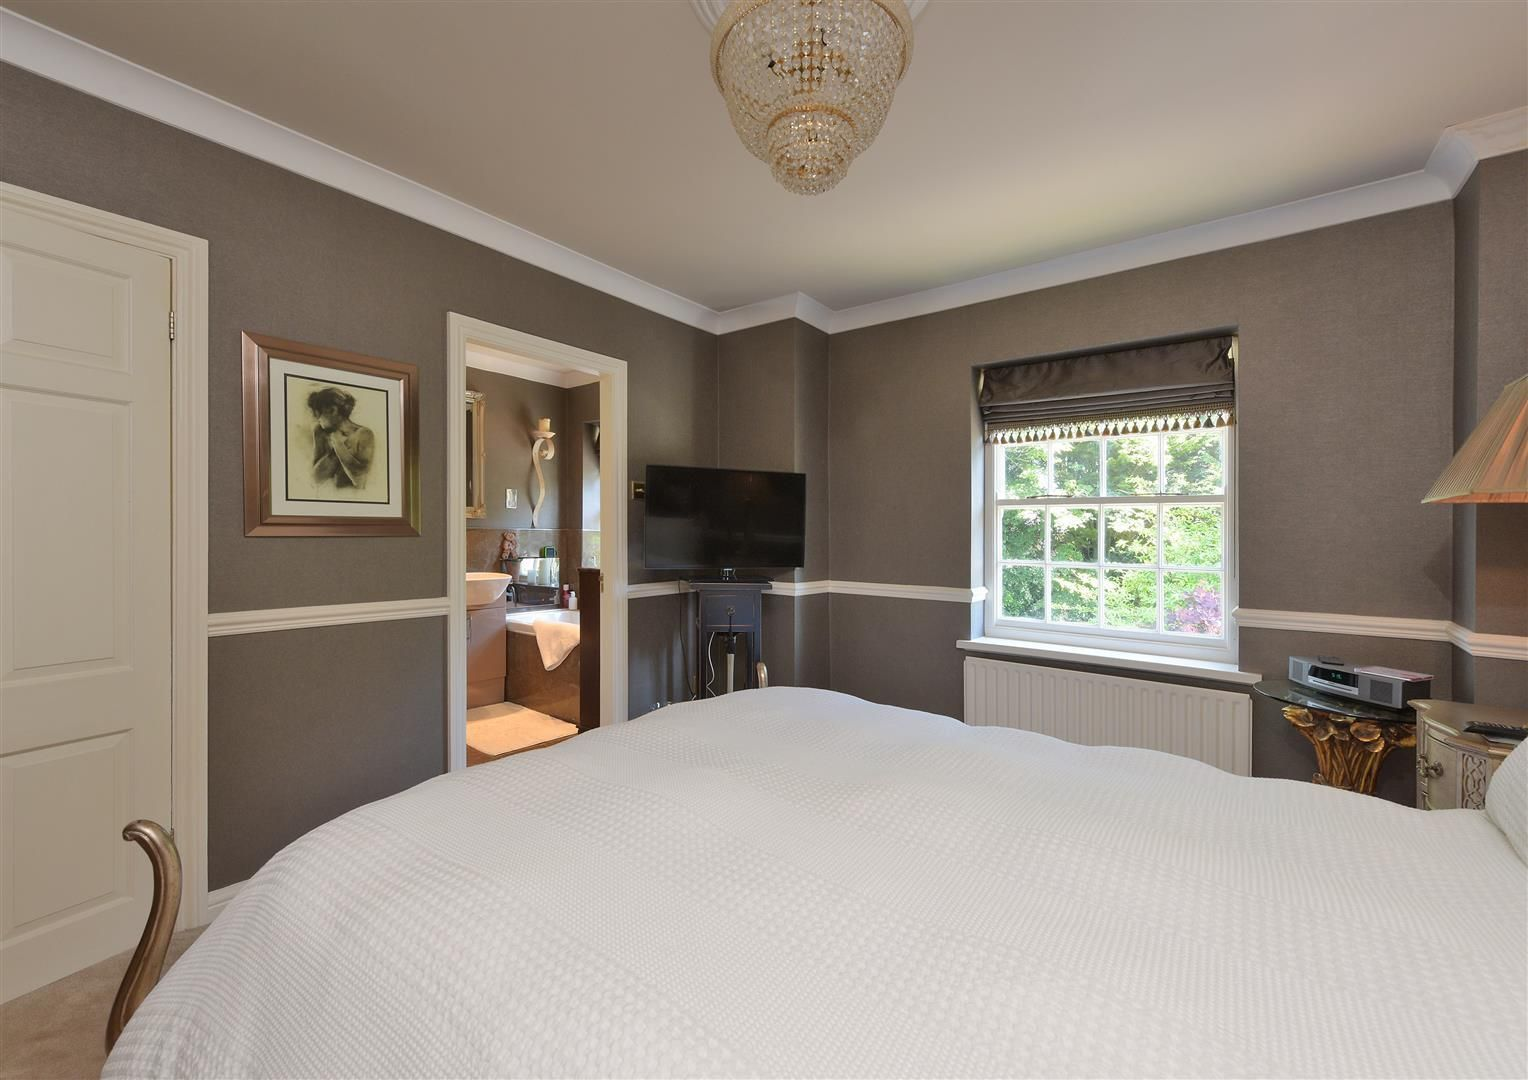 3 bed house for sale in Hagley  - Property Image 13